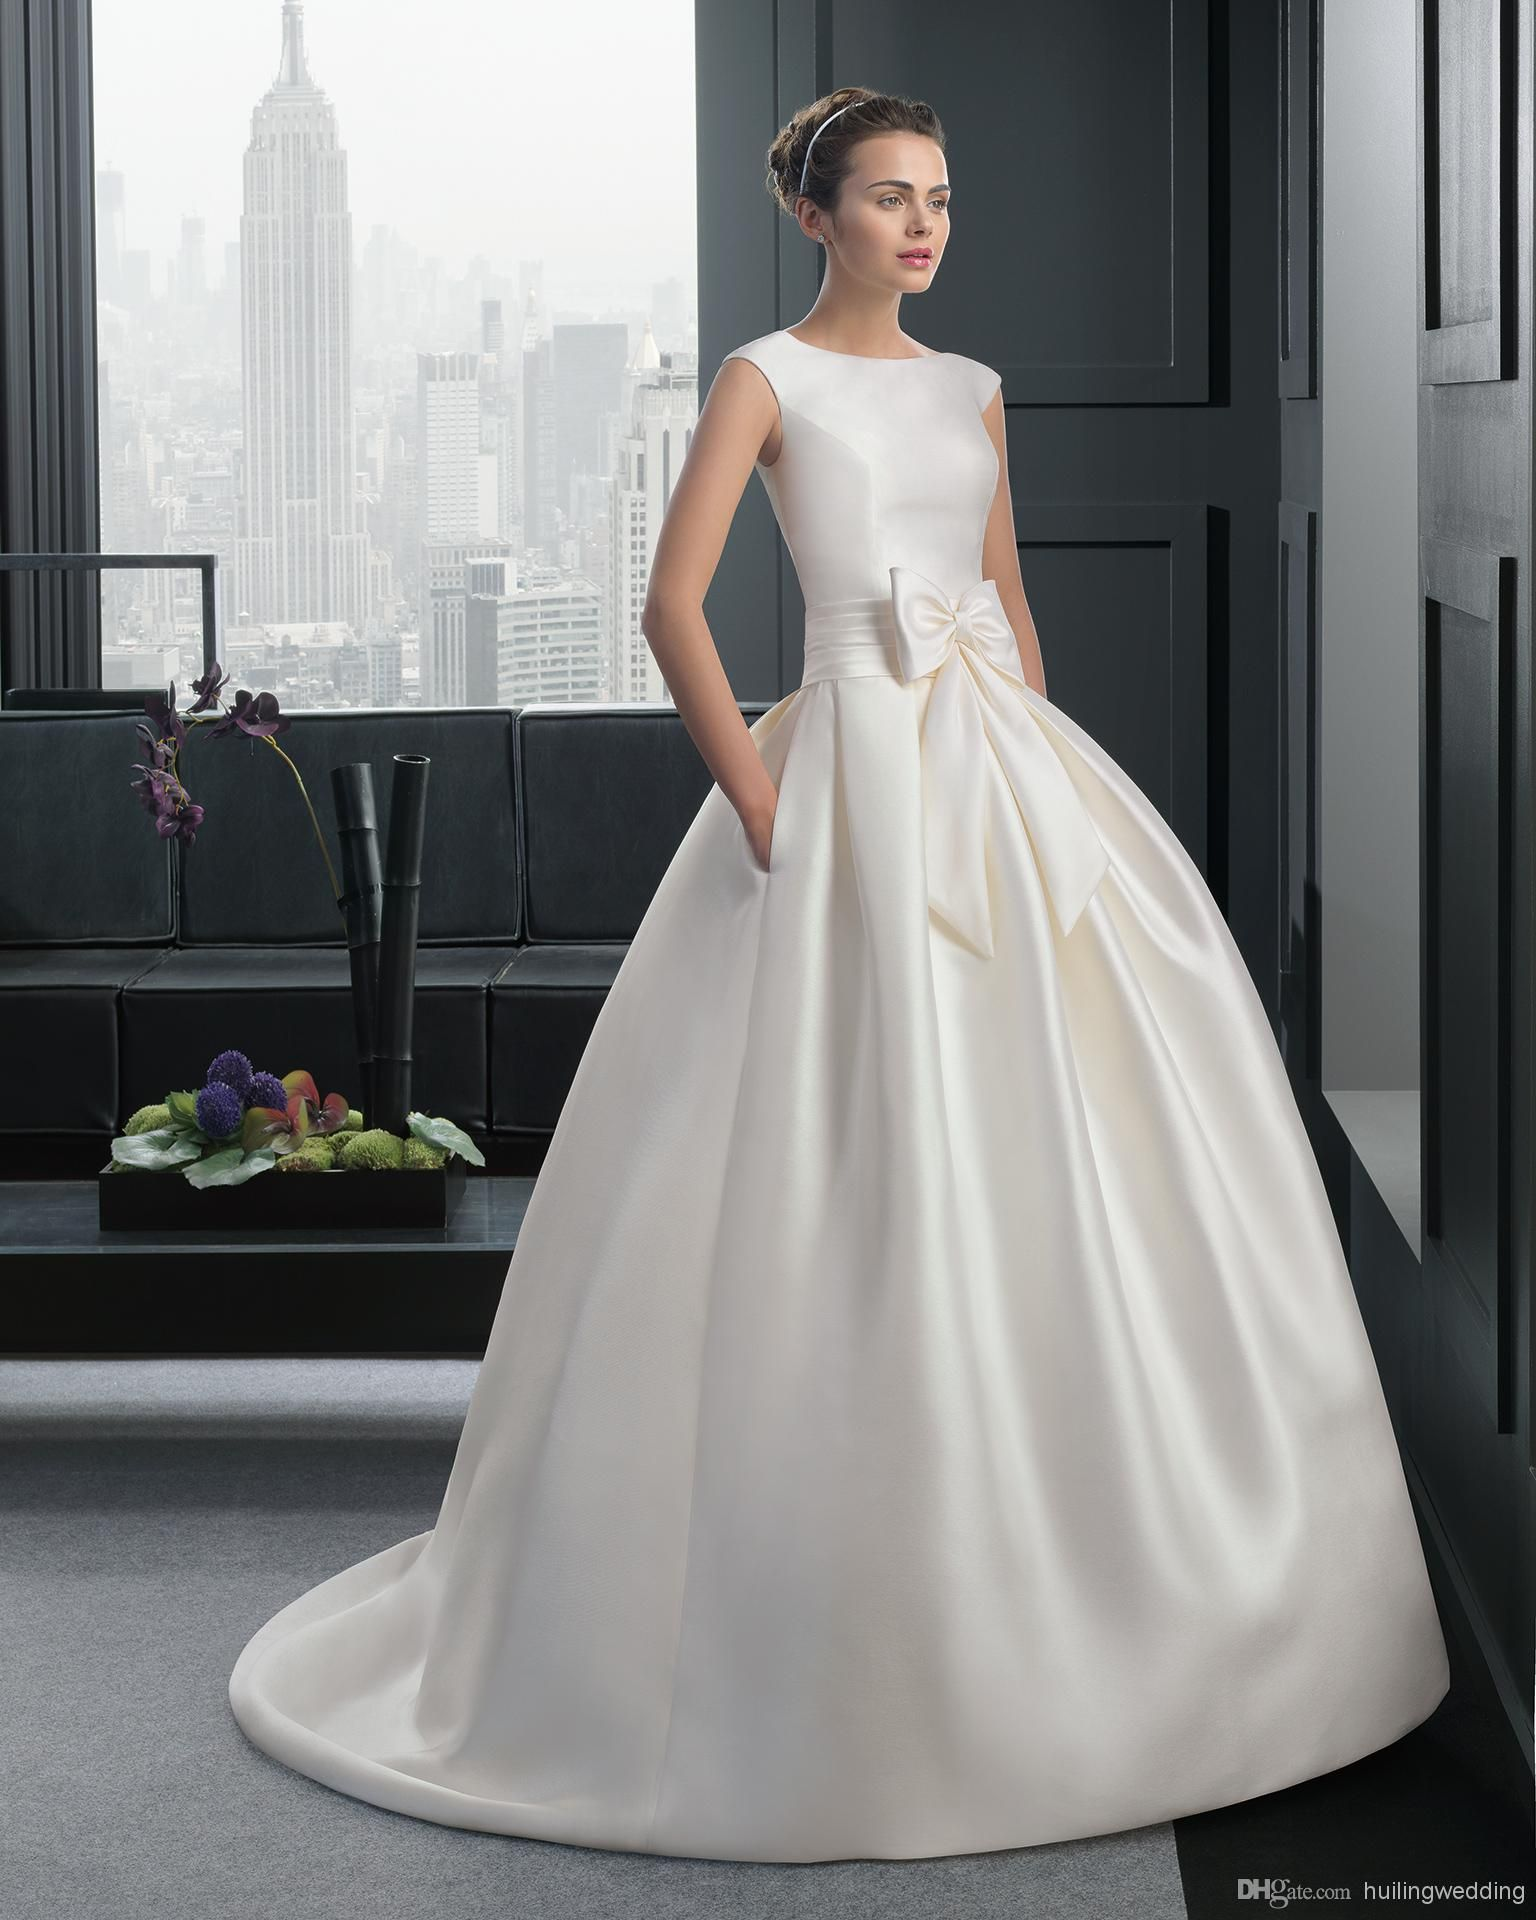 Cheap Fine Holy Sheer Satin Unique Design Fashionable Style Vintage Wedding Dress Crew Sleeveless Ribbon Big Bow In Front Button Zipper Gown Hl959 As Low